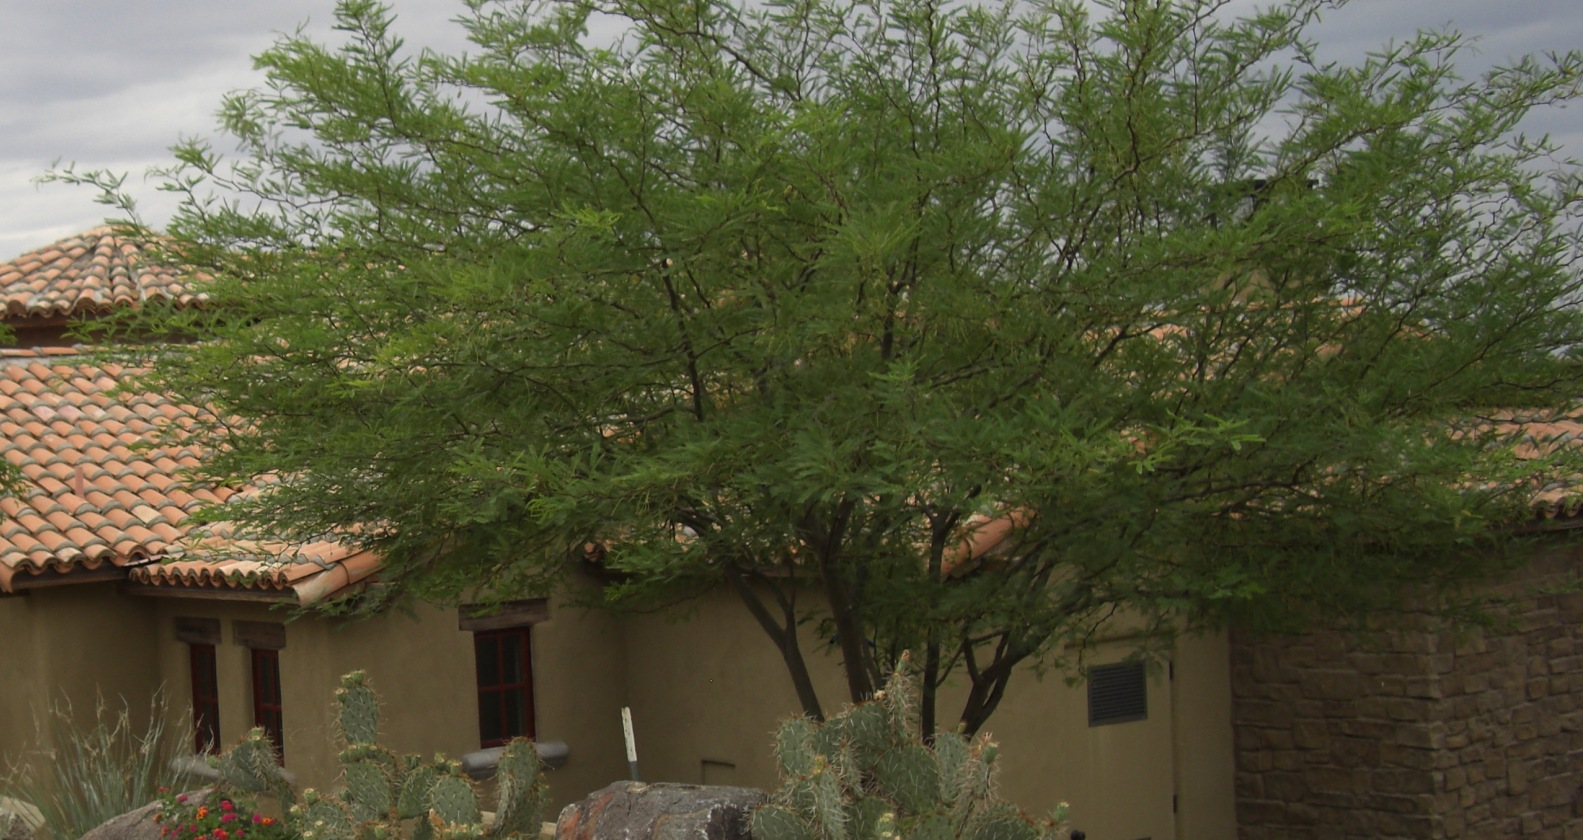 Chilean Mesquire, one of best trees used in landscaping Phoenix.